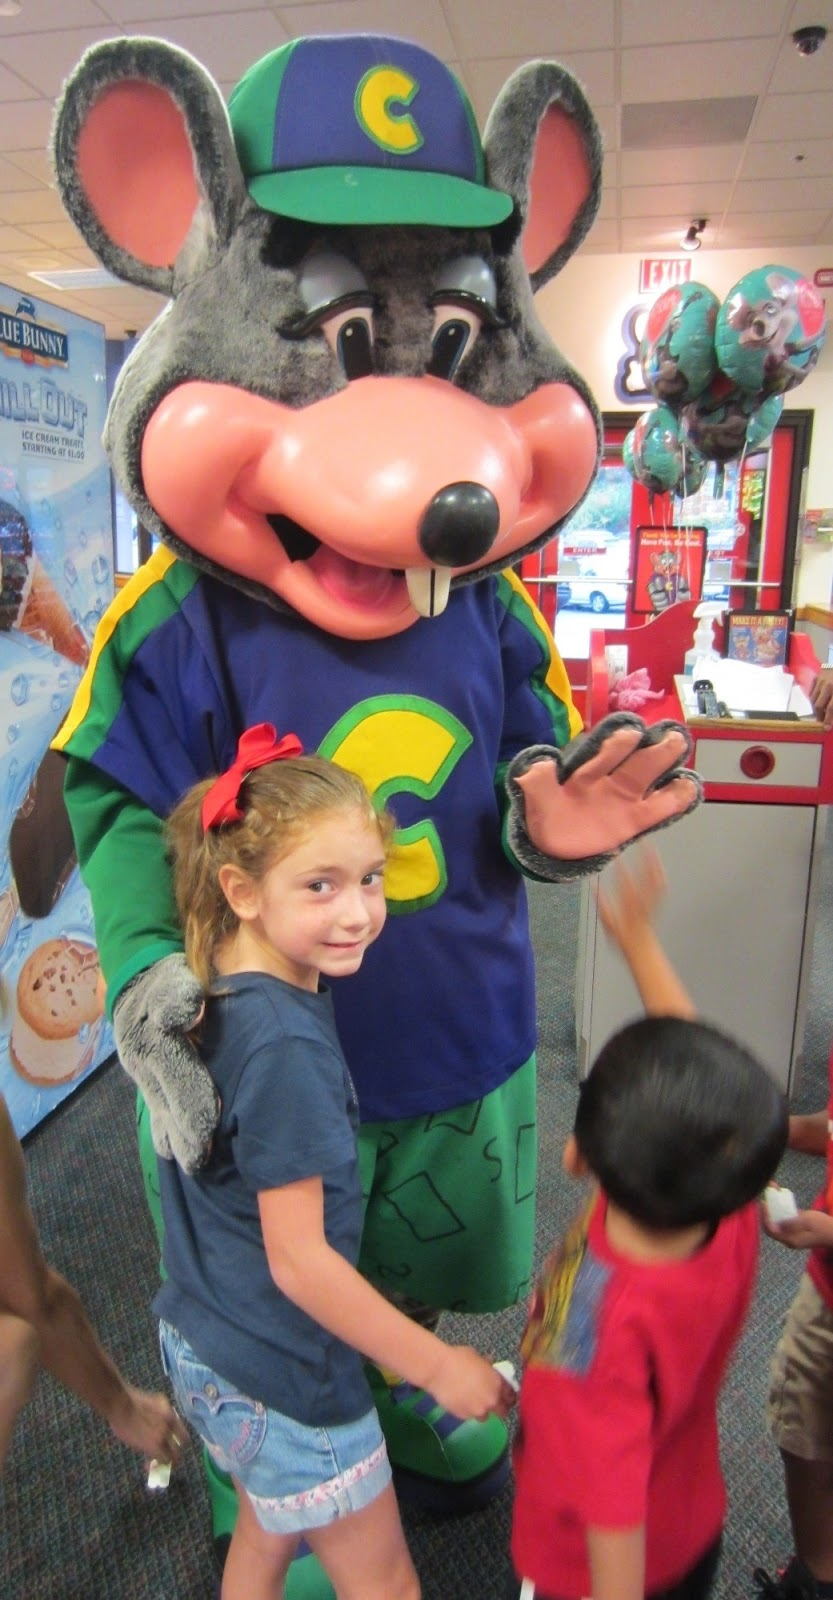 evan and lauren 39 s cool blog 8 10 12 have you been to chuck e cheese 39 s lately. Black Bedroom Furniture Sets. Home Design Ideas